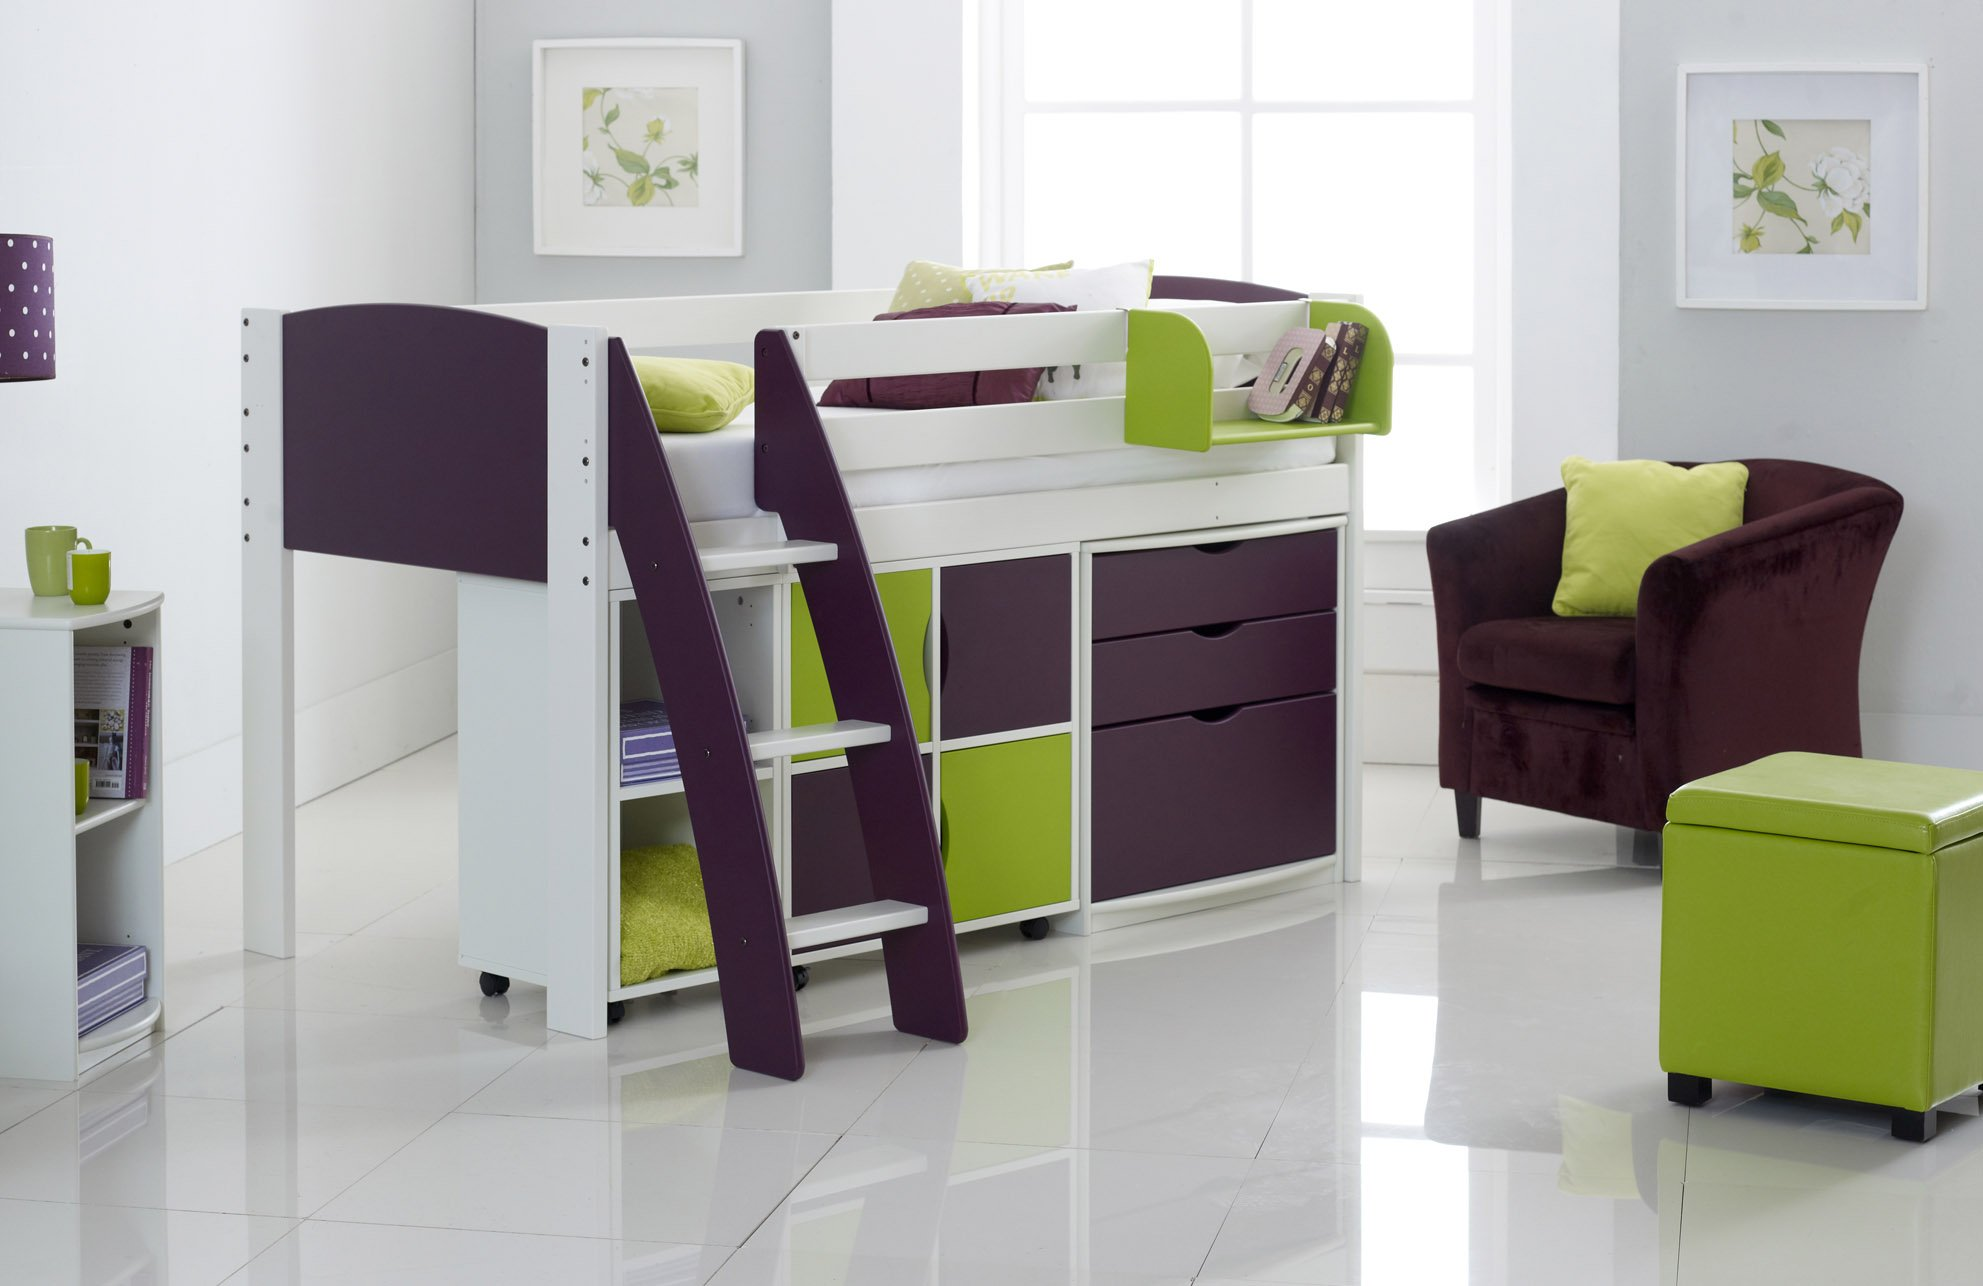 Mid Height Beds Mid Sleeper Cabin Bed Kids Beds Scallywag Kids - Scallywags bedroom furniture